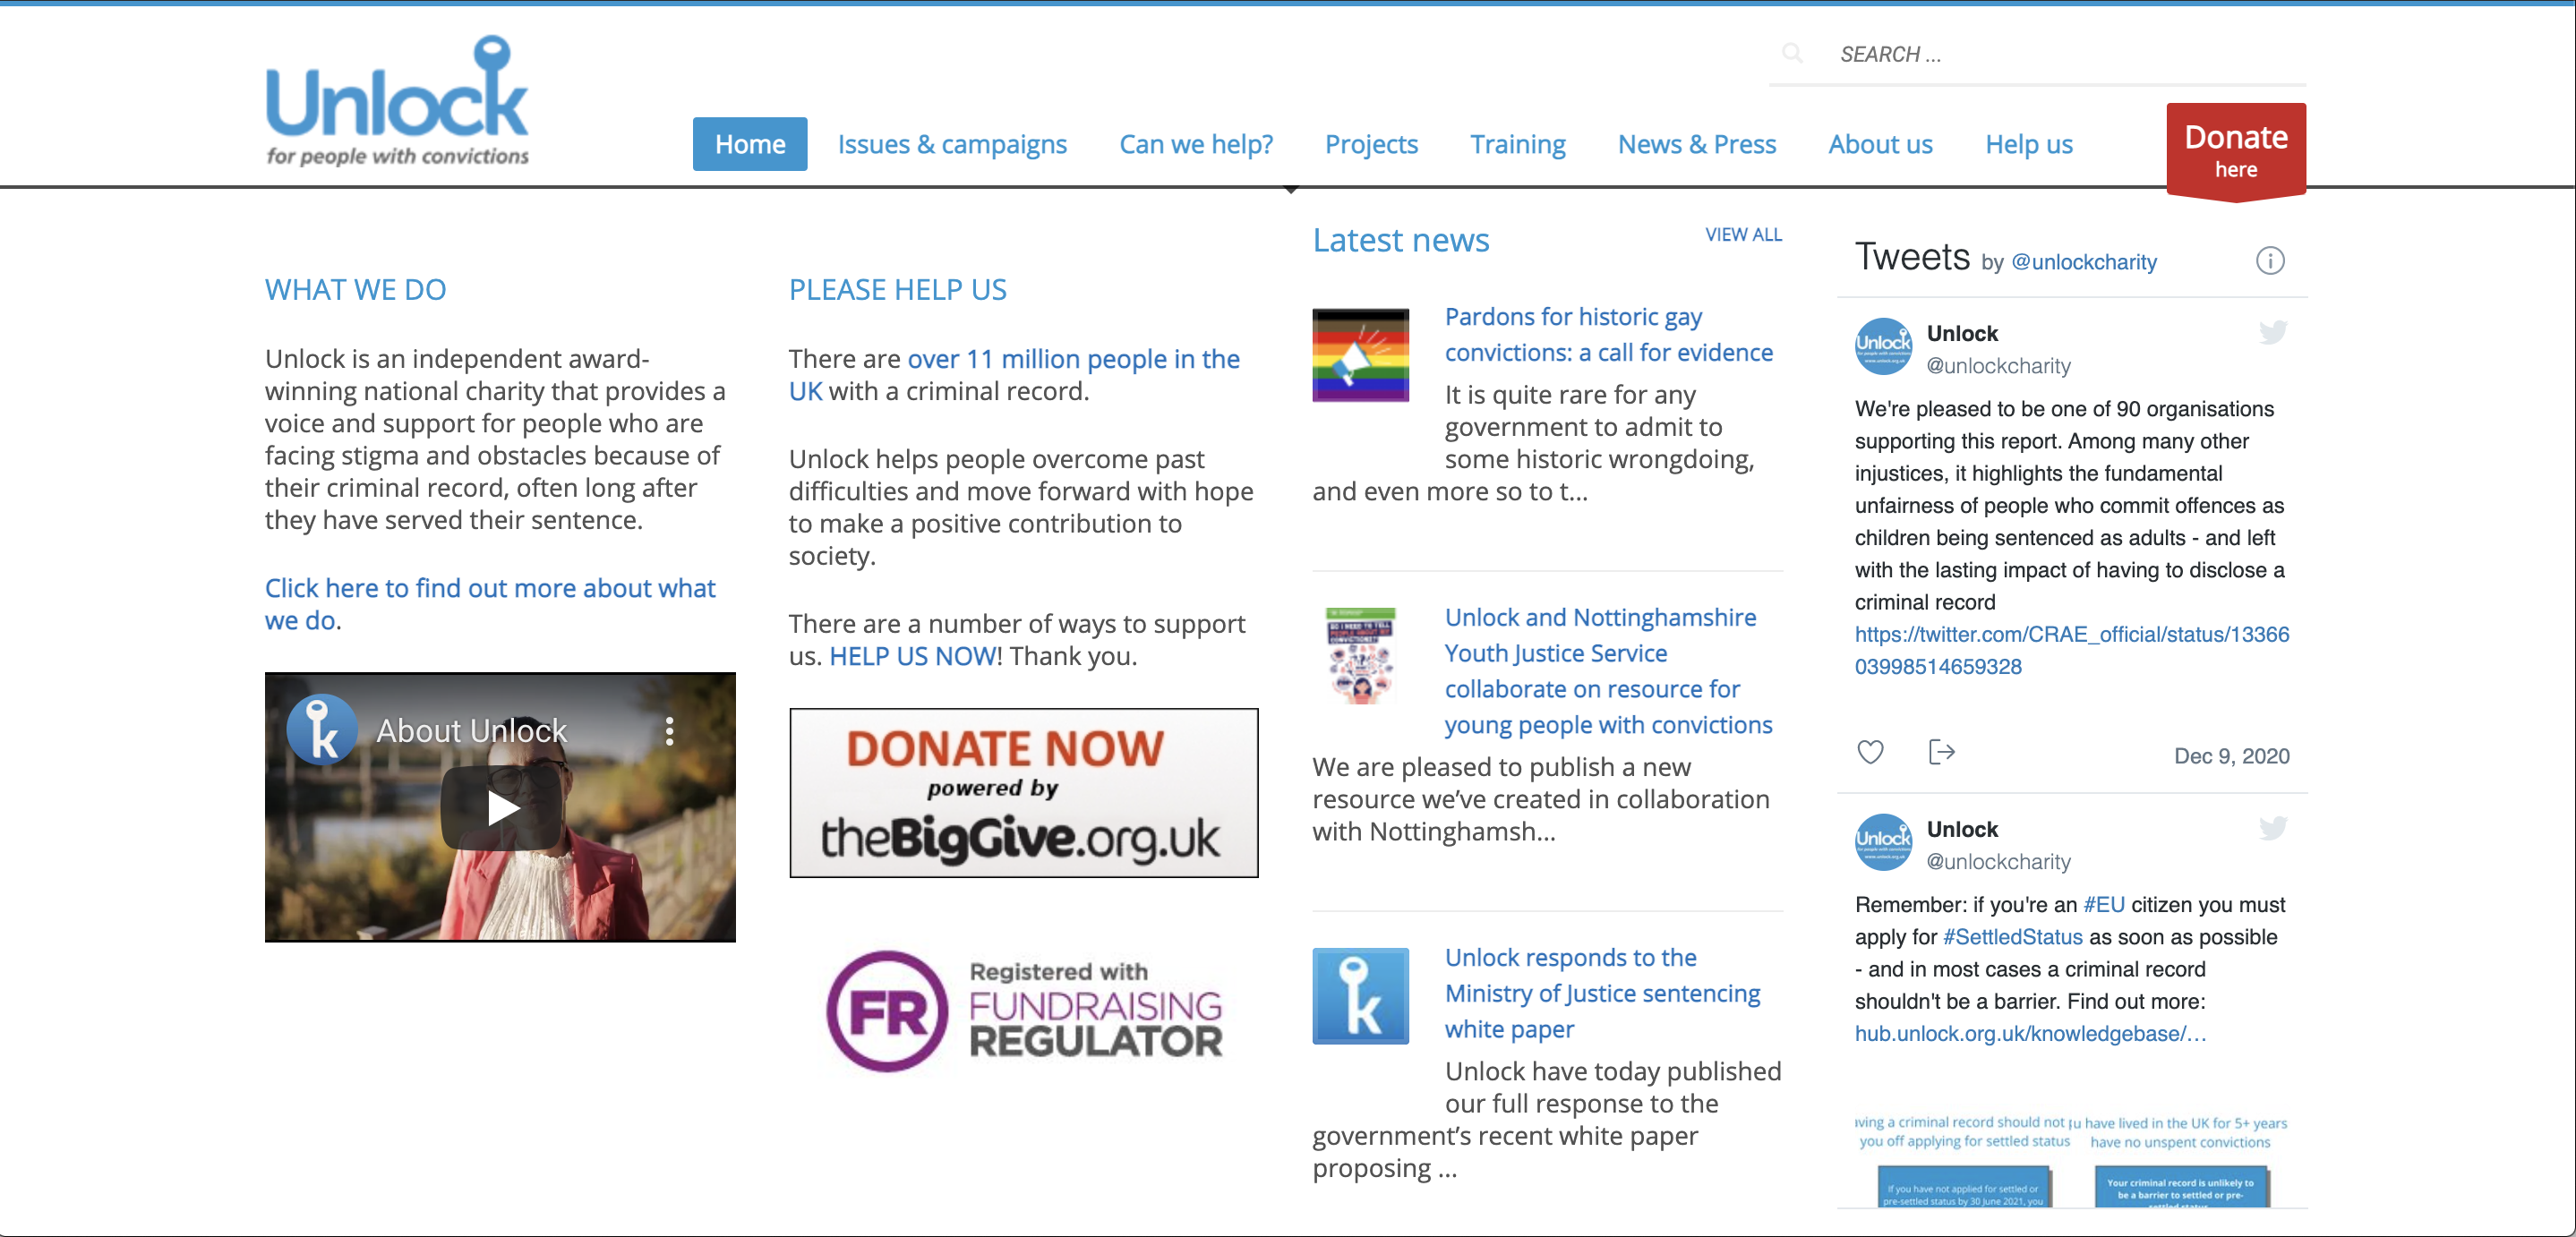 Top of the Unlock charity home page